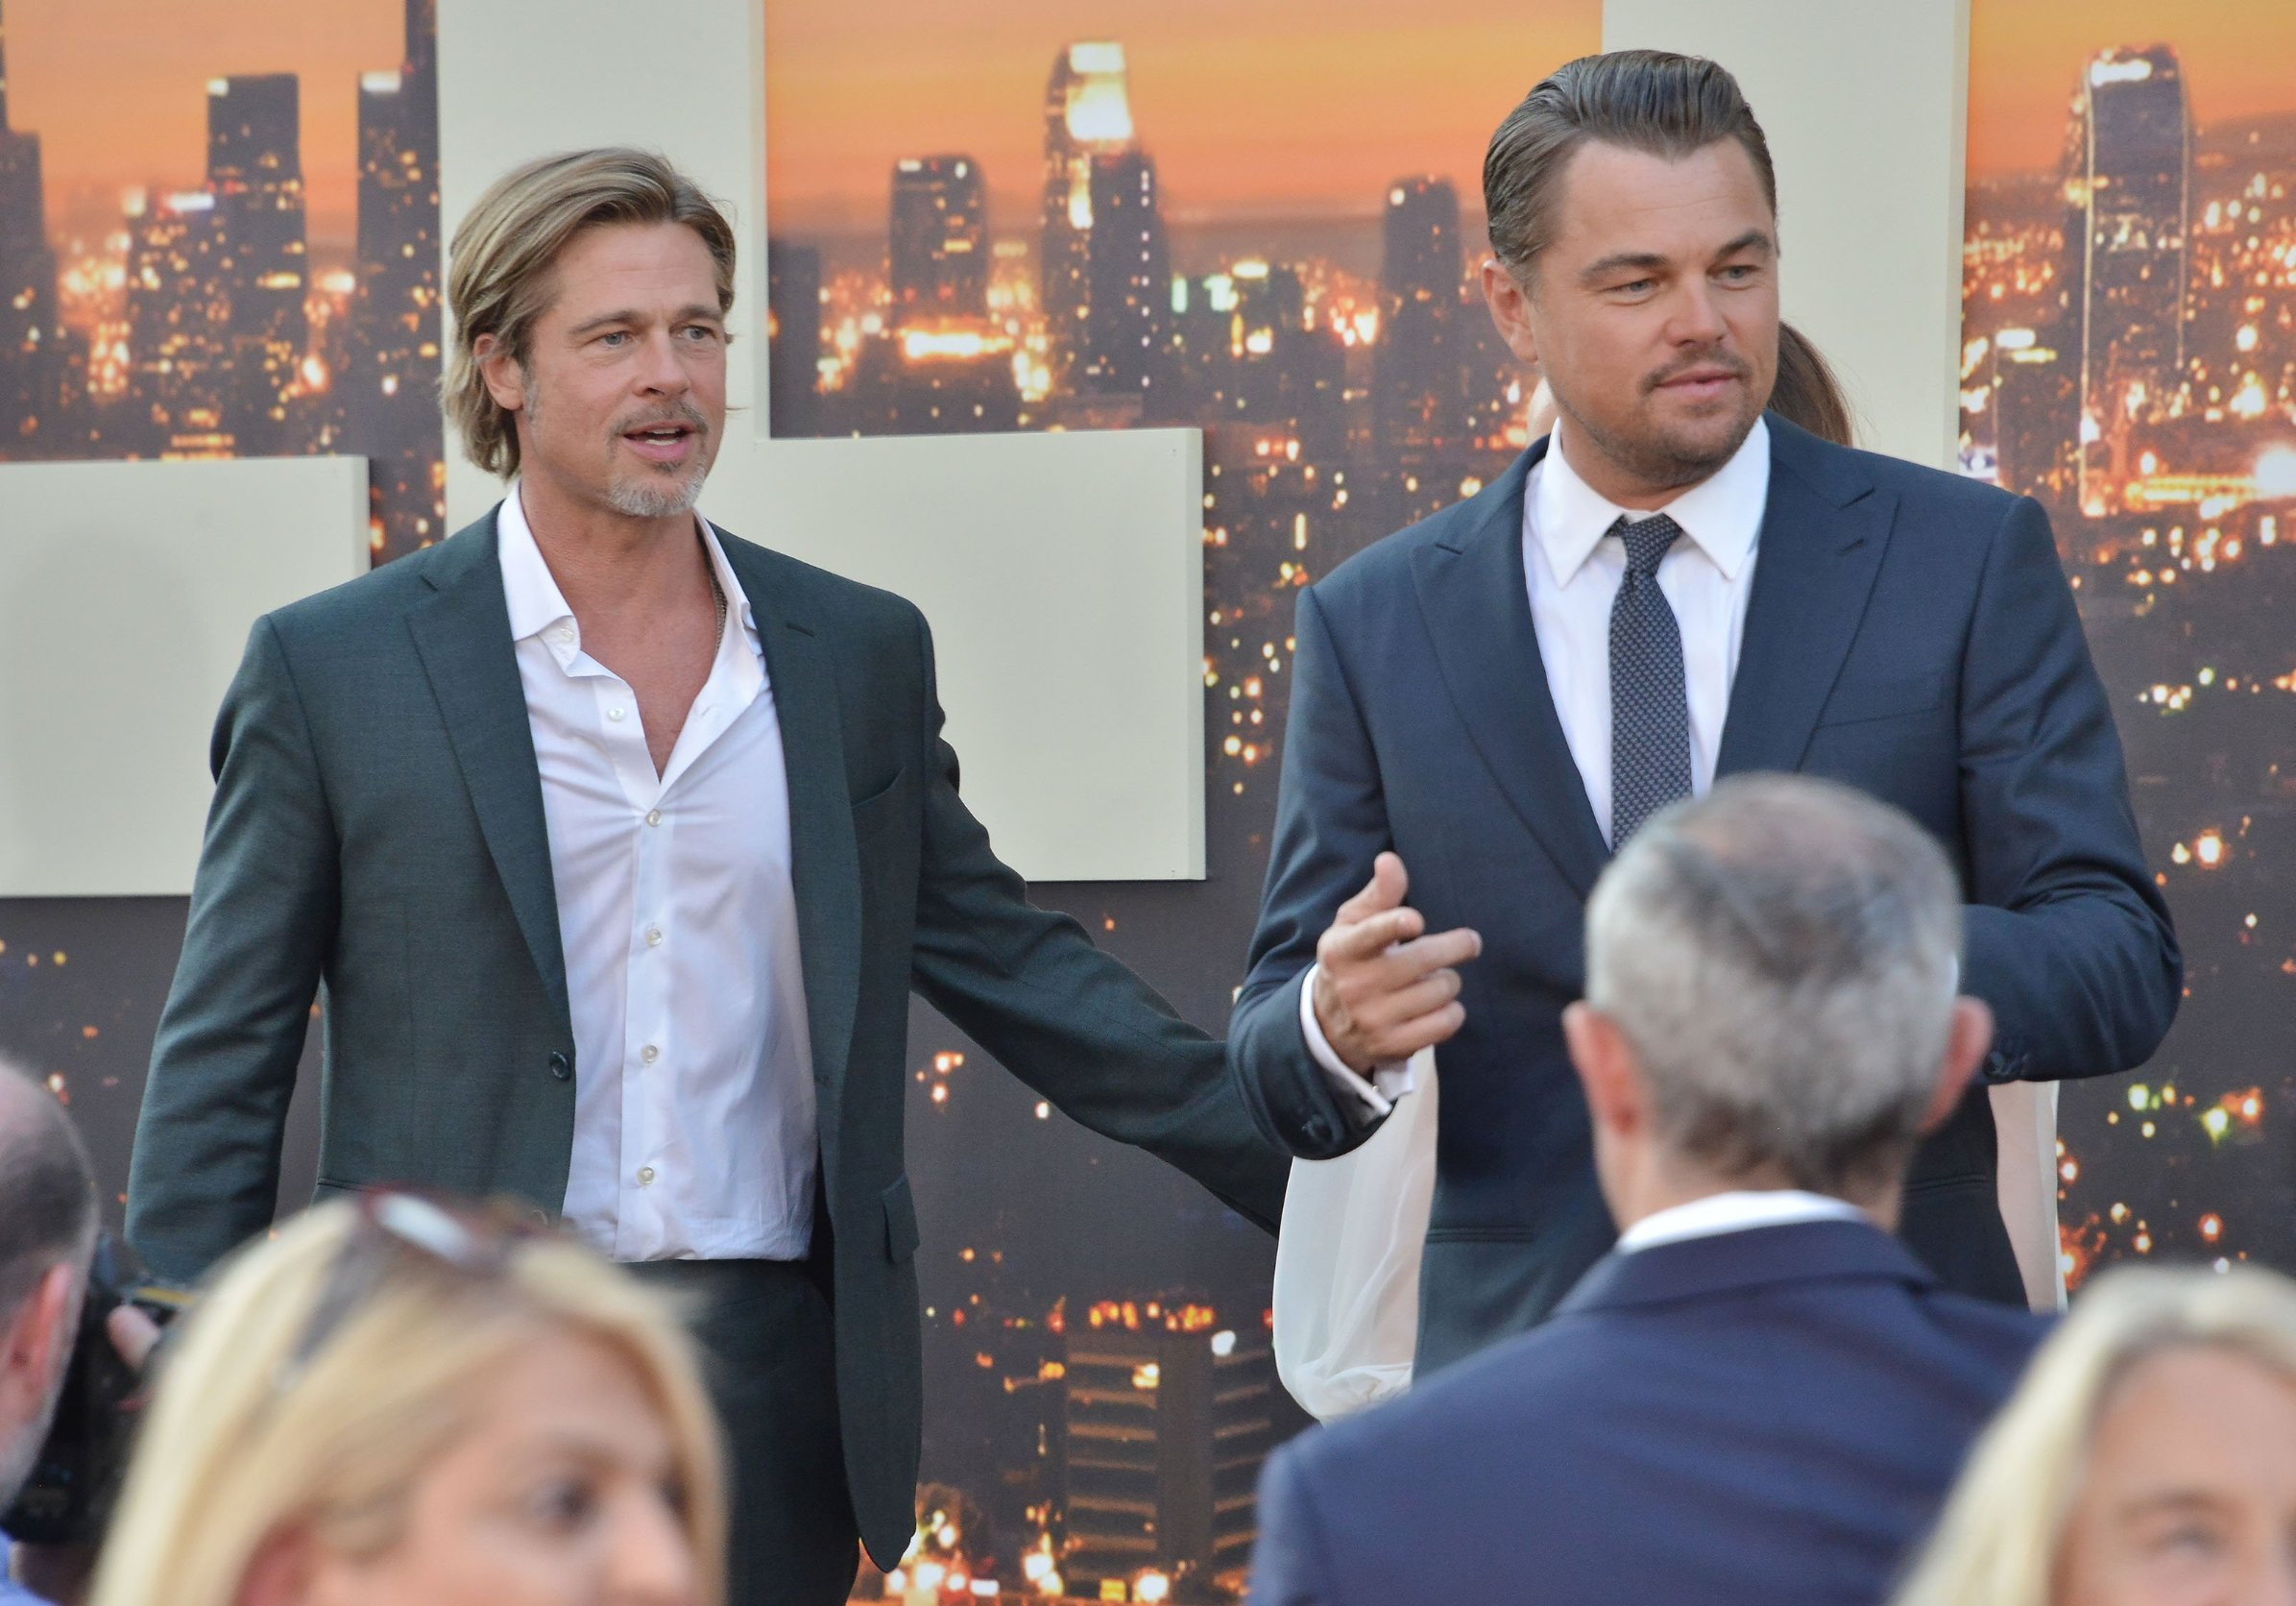 (L-R) Brad Pitt and Leonardo DiCaprio at the ONCE UPON A TIME...IN HOLLYWOOD World Premiere held at the TCL Chinese Theatre in Hollywood, CA on Monday, July 22, 2019., Image: 460250373, License: Rights-managed, Restrictions: *** World Rights ***, Model Release: no, Credit line: Profimedia, ddp USA